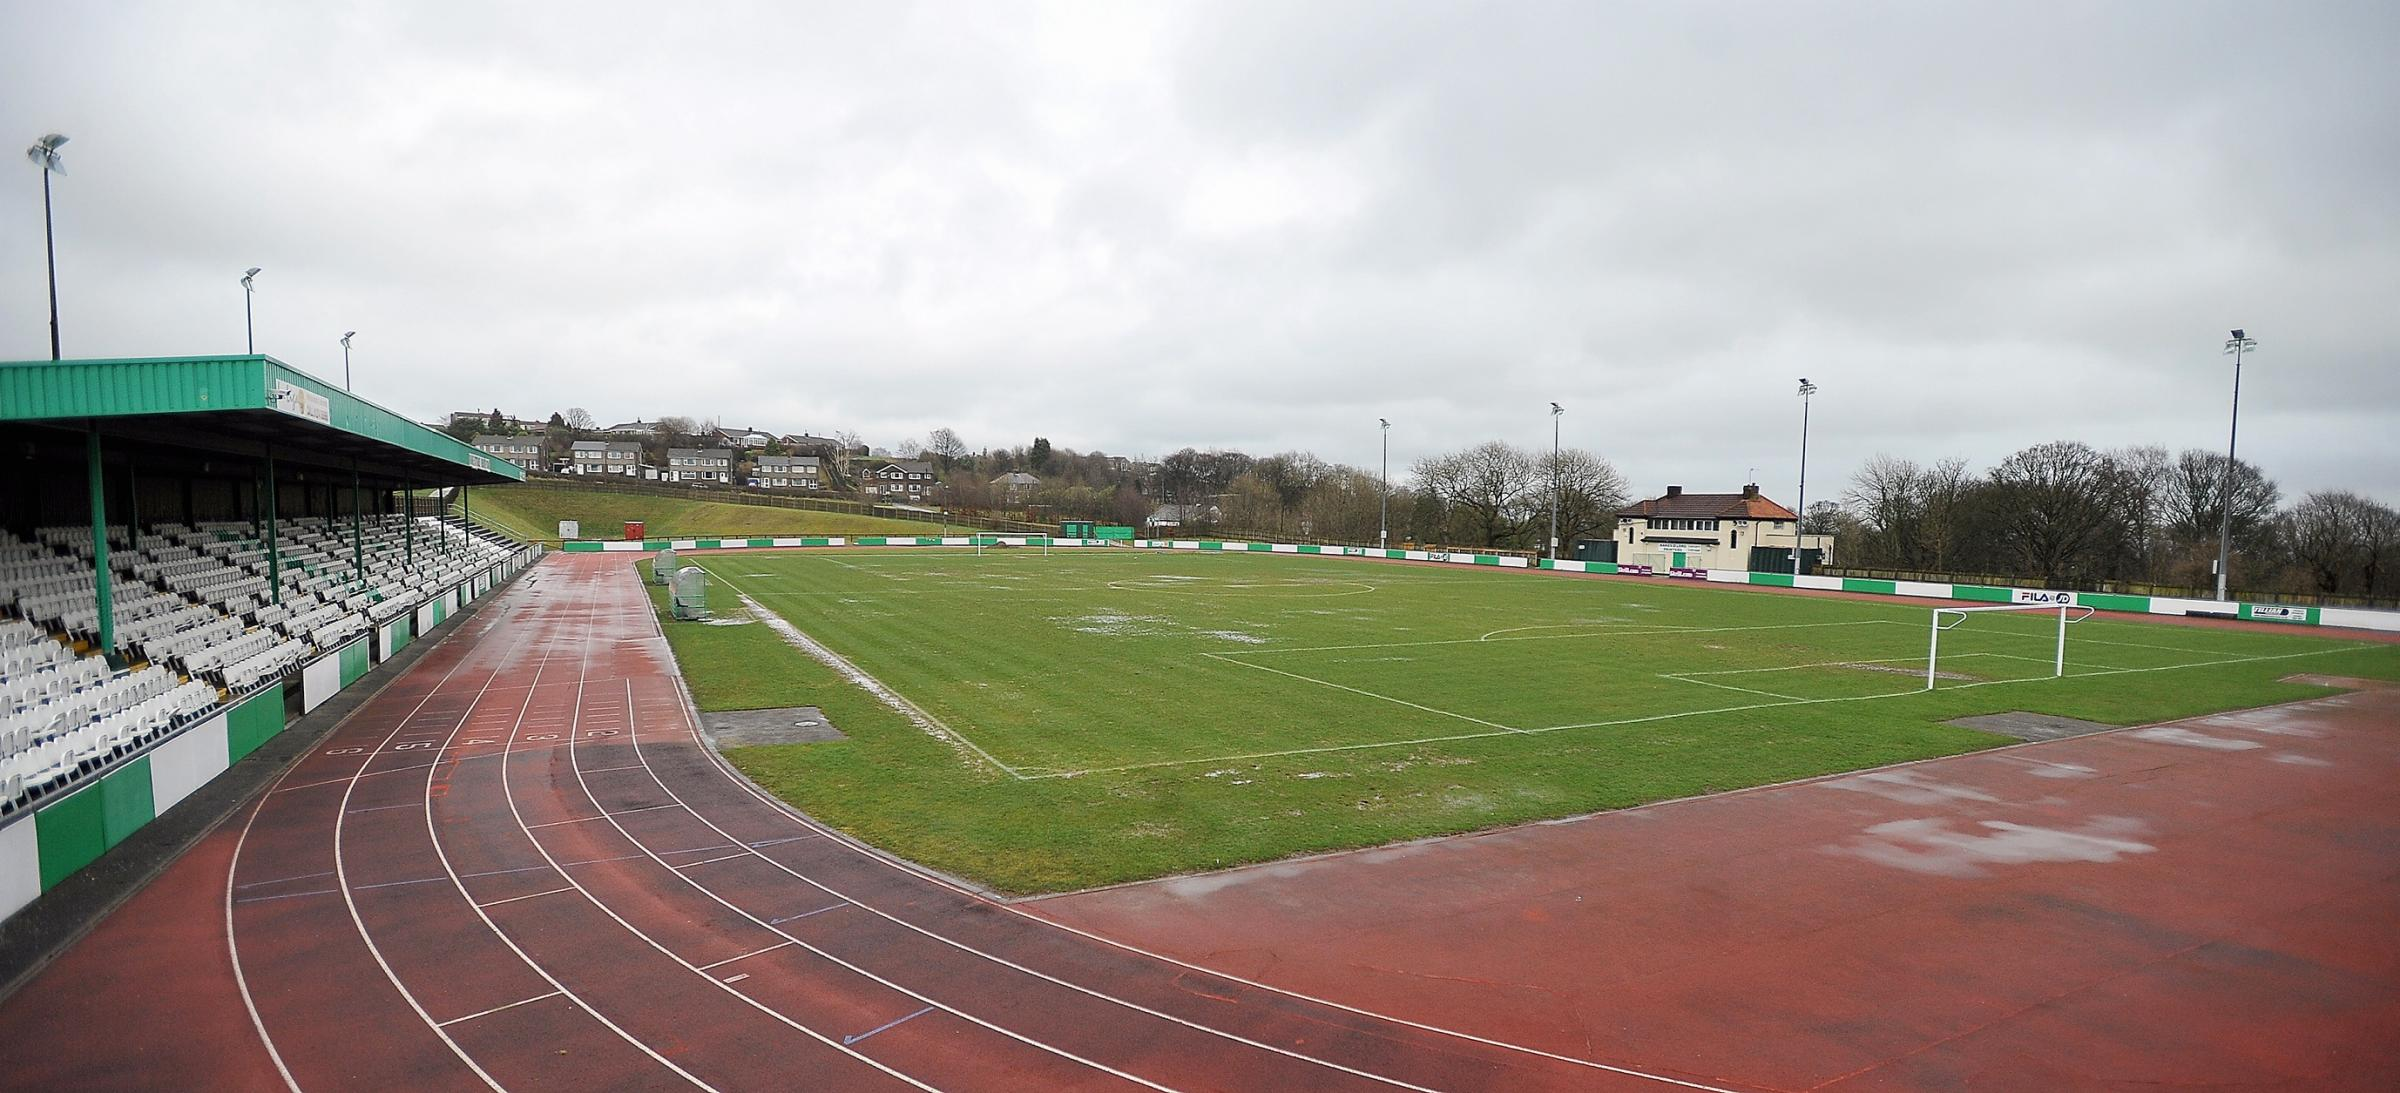 This was the scene at Horsfall Stadium on Saturday as Avenue's match was washed out